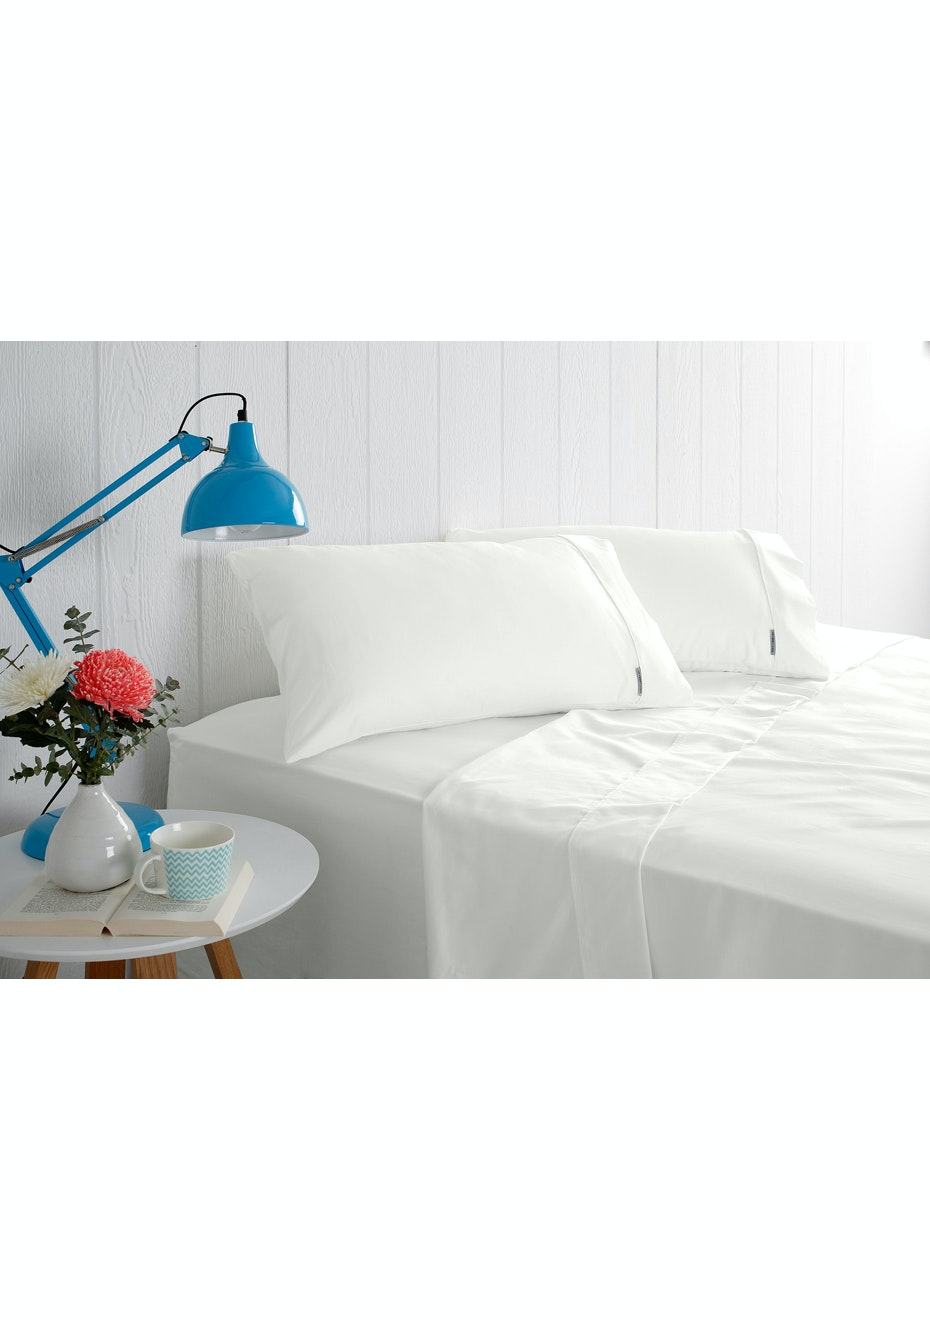 Odyssey Living 1000 Thread Count - Cotton Rich Solid Sateen -White - King Bed